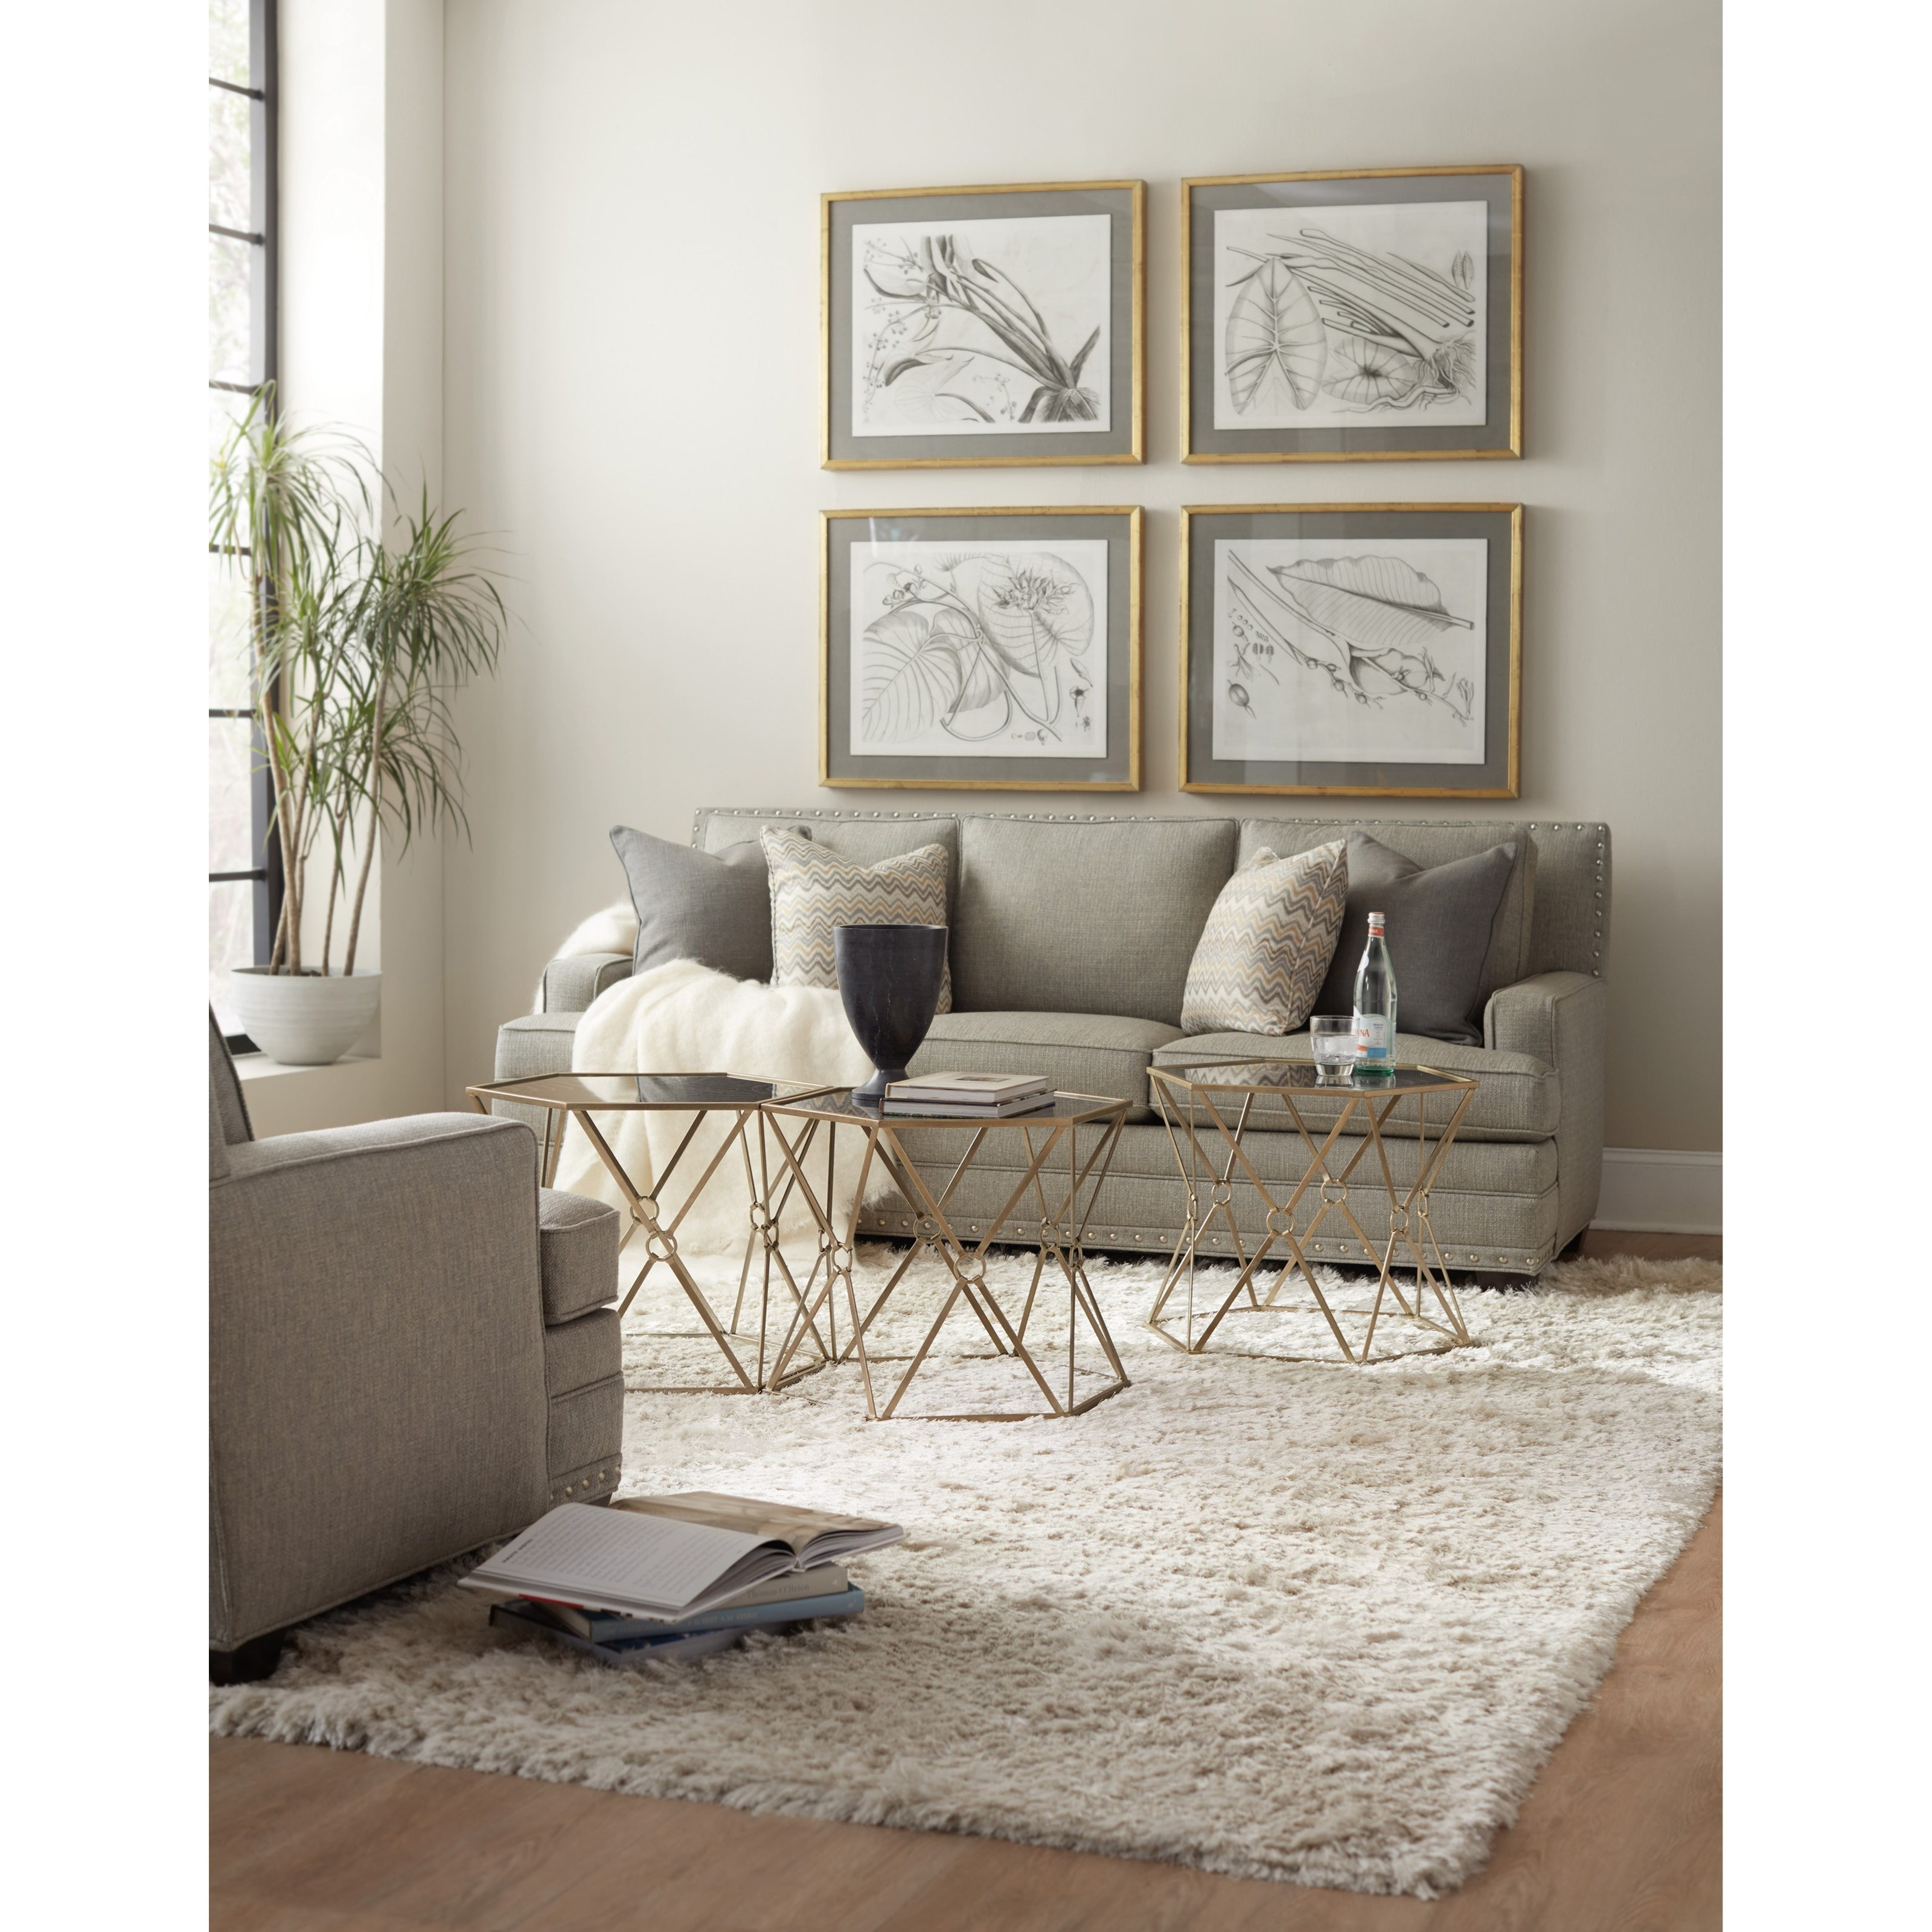 Hooker Furniture Living Room Accents Accent Bunching Tables With Etched Black Glass Top Knight